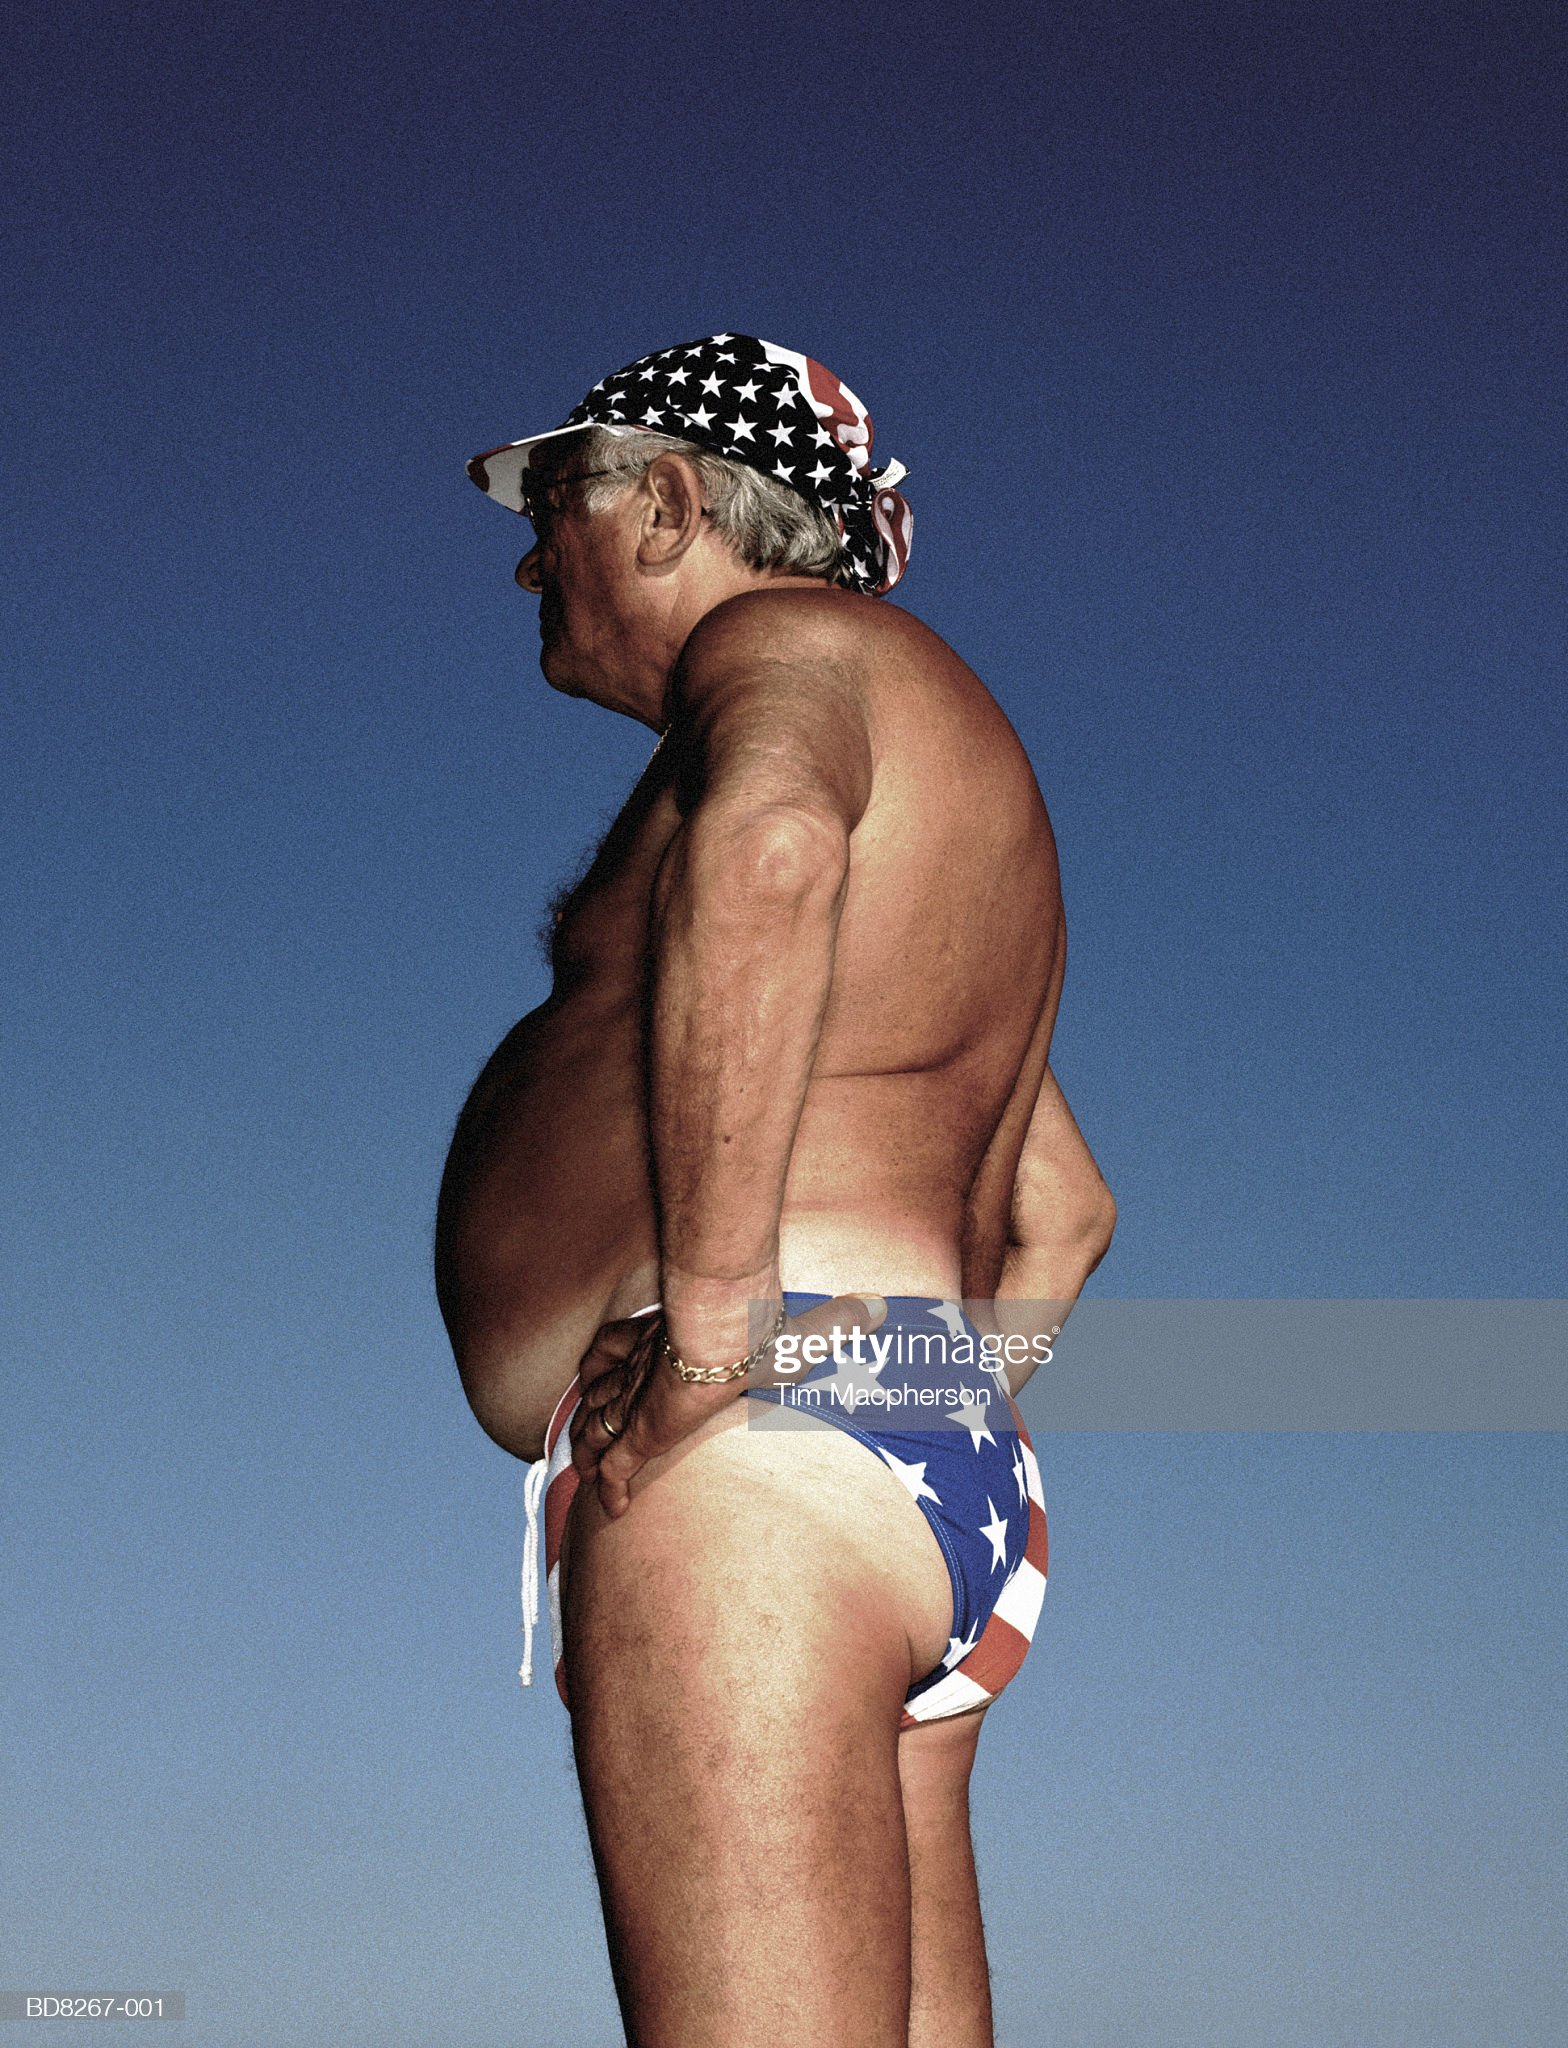 mature-man-wearing-stars-and-stripes-swimming-trunks-profile-picture-idBD8267-001?s=2048x2048